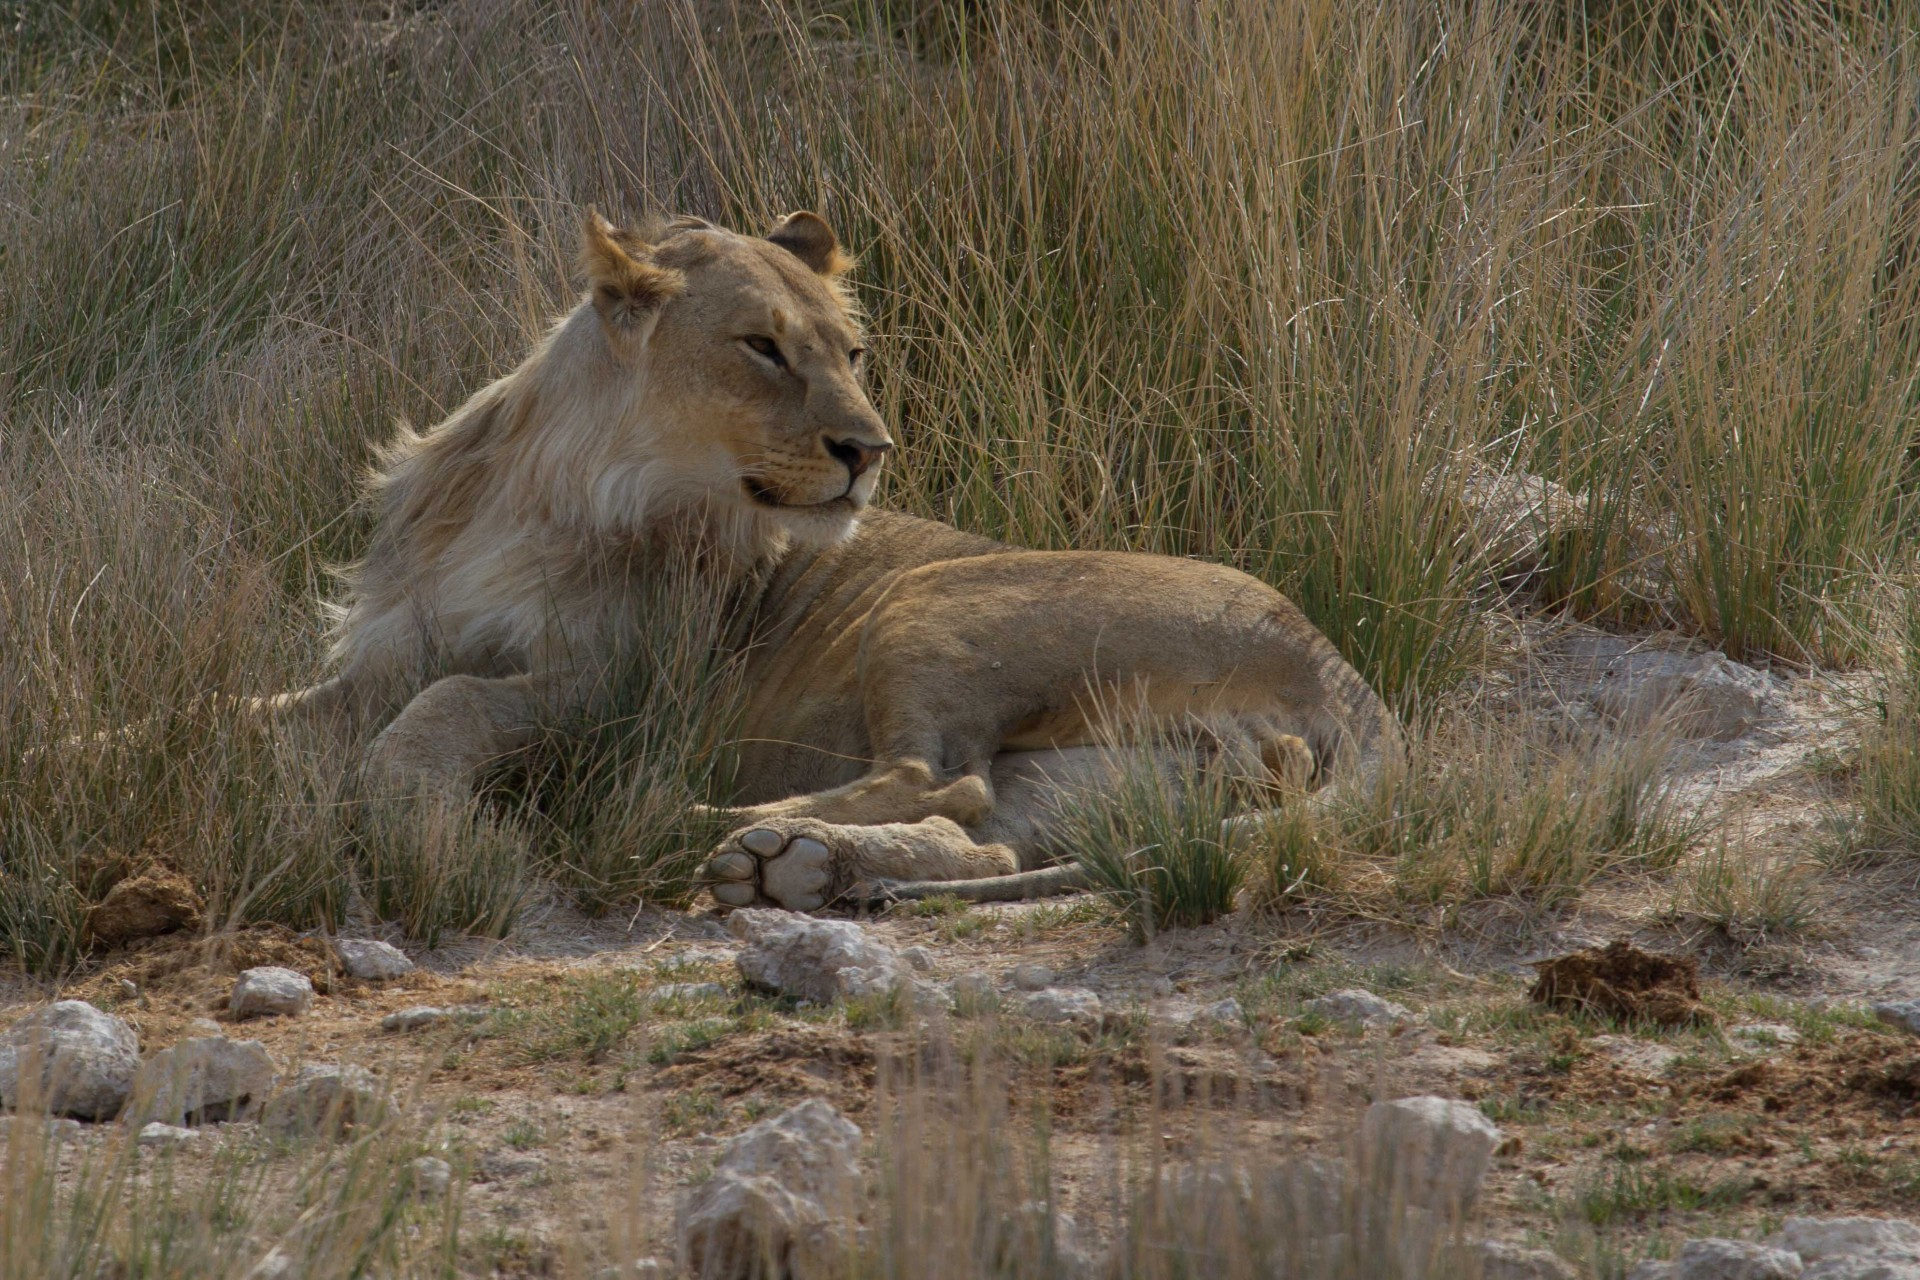 Young Male Lion, Etosha